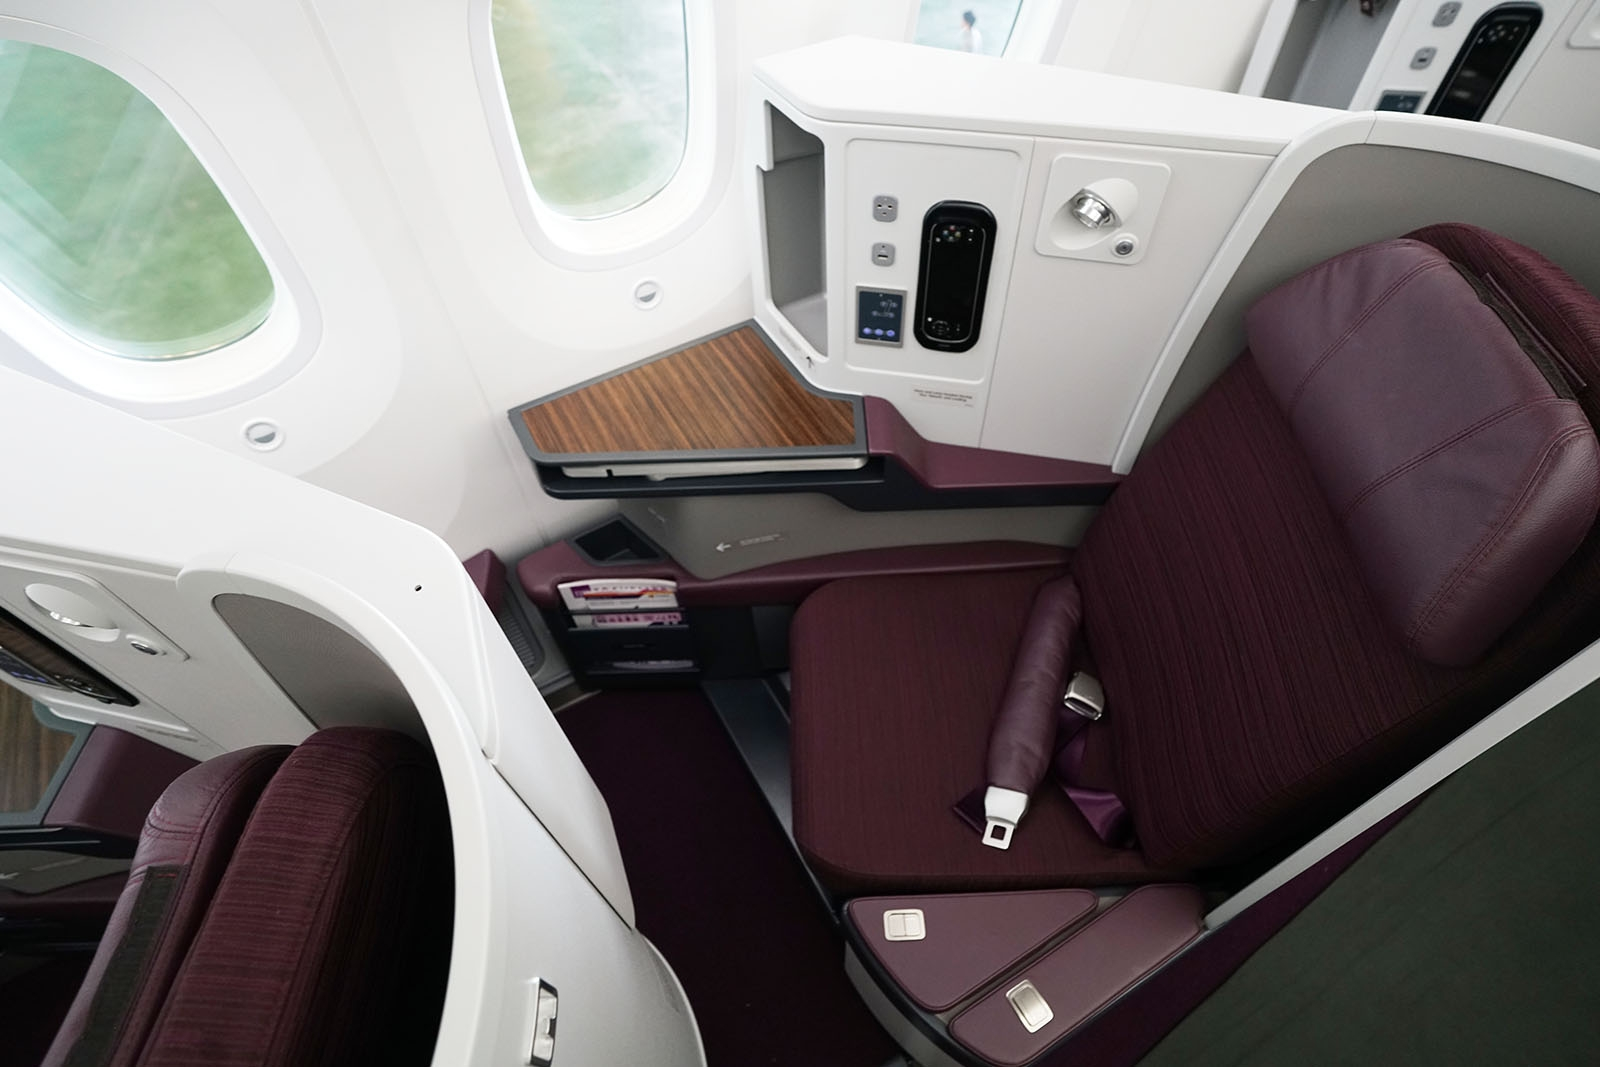 Business Class (Royal Silk) sæde i Thai Airways Boeing 787-9 Dreamliner (Foto: Spin9.me)